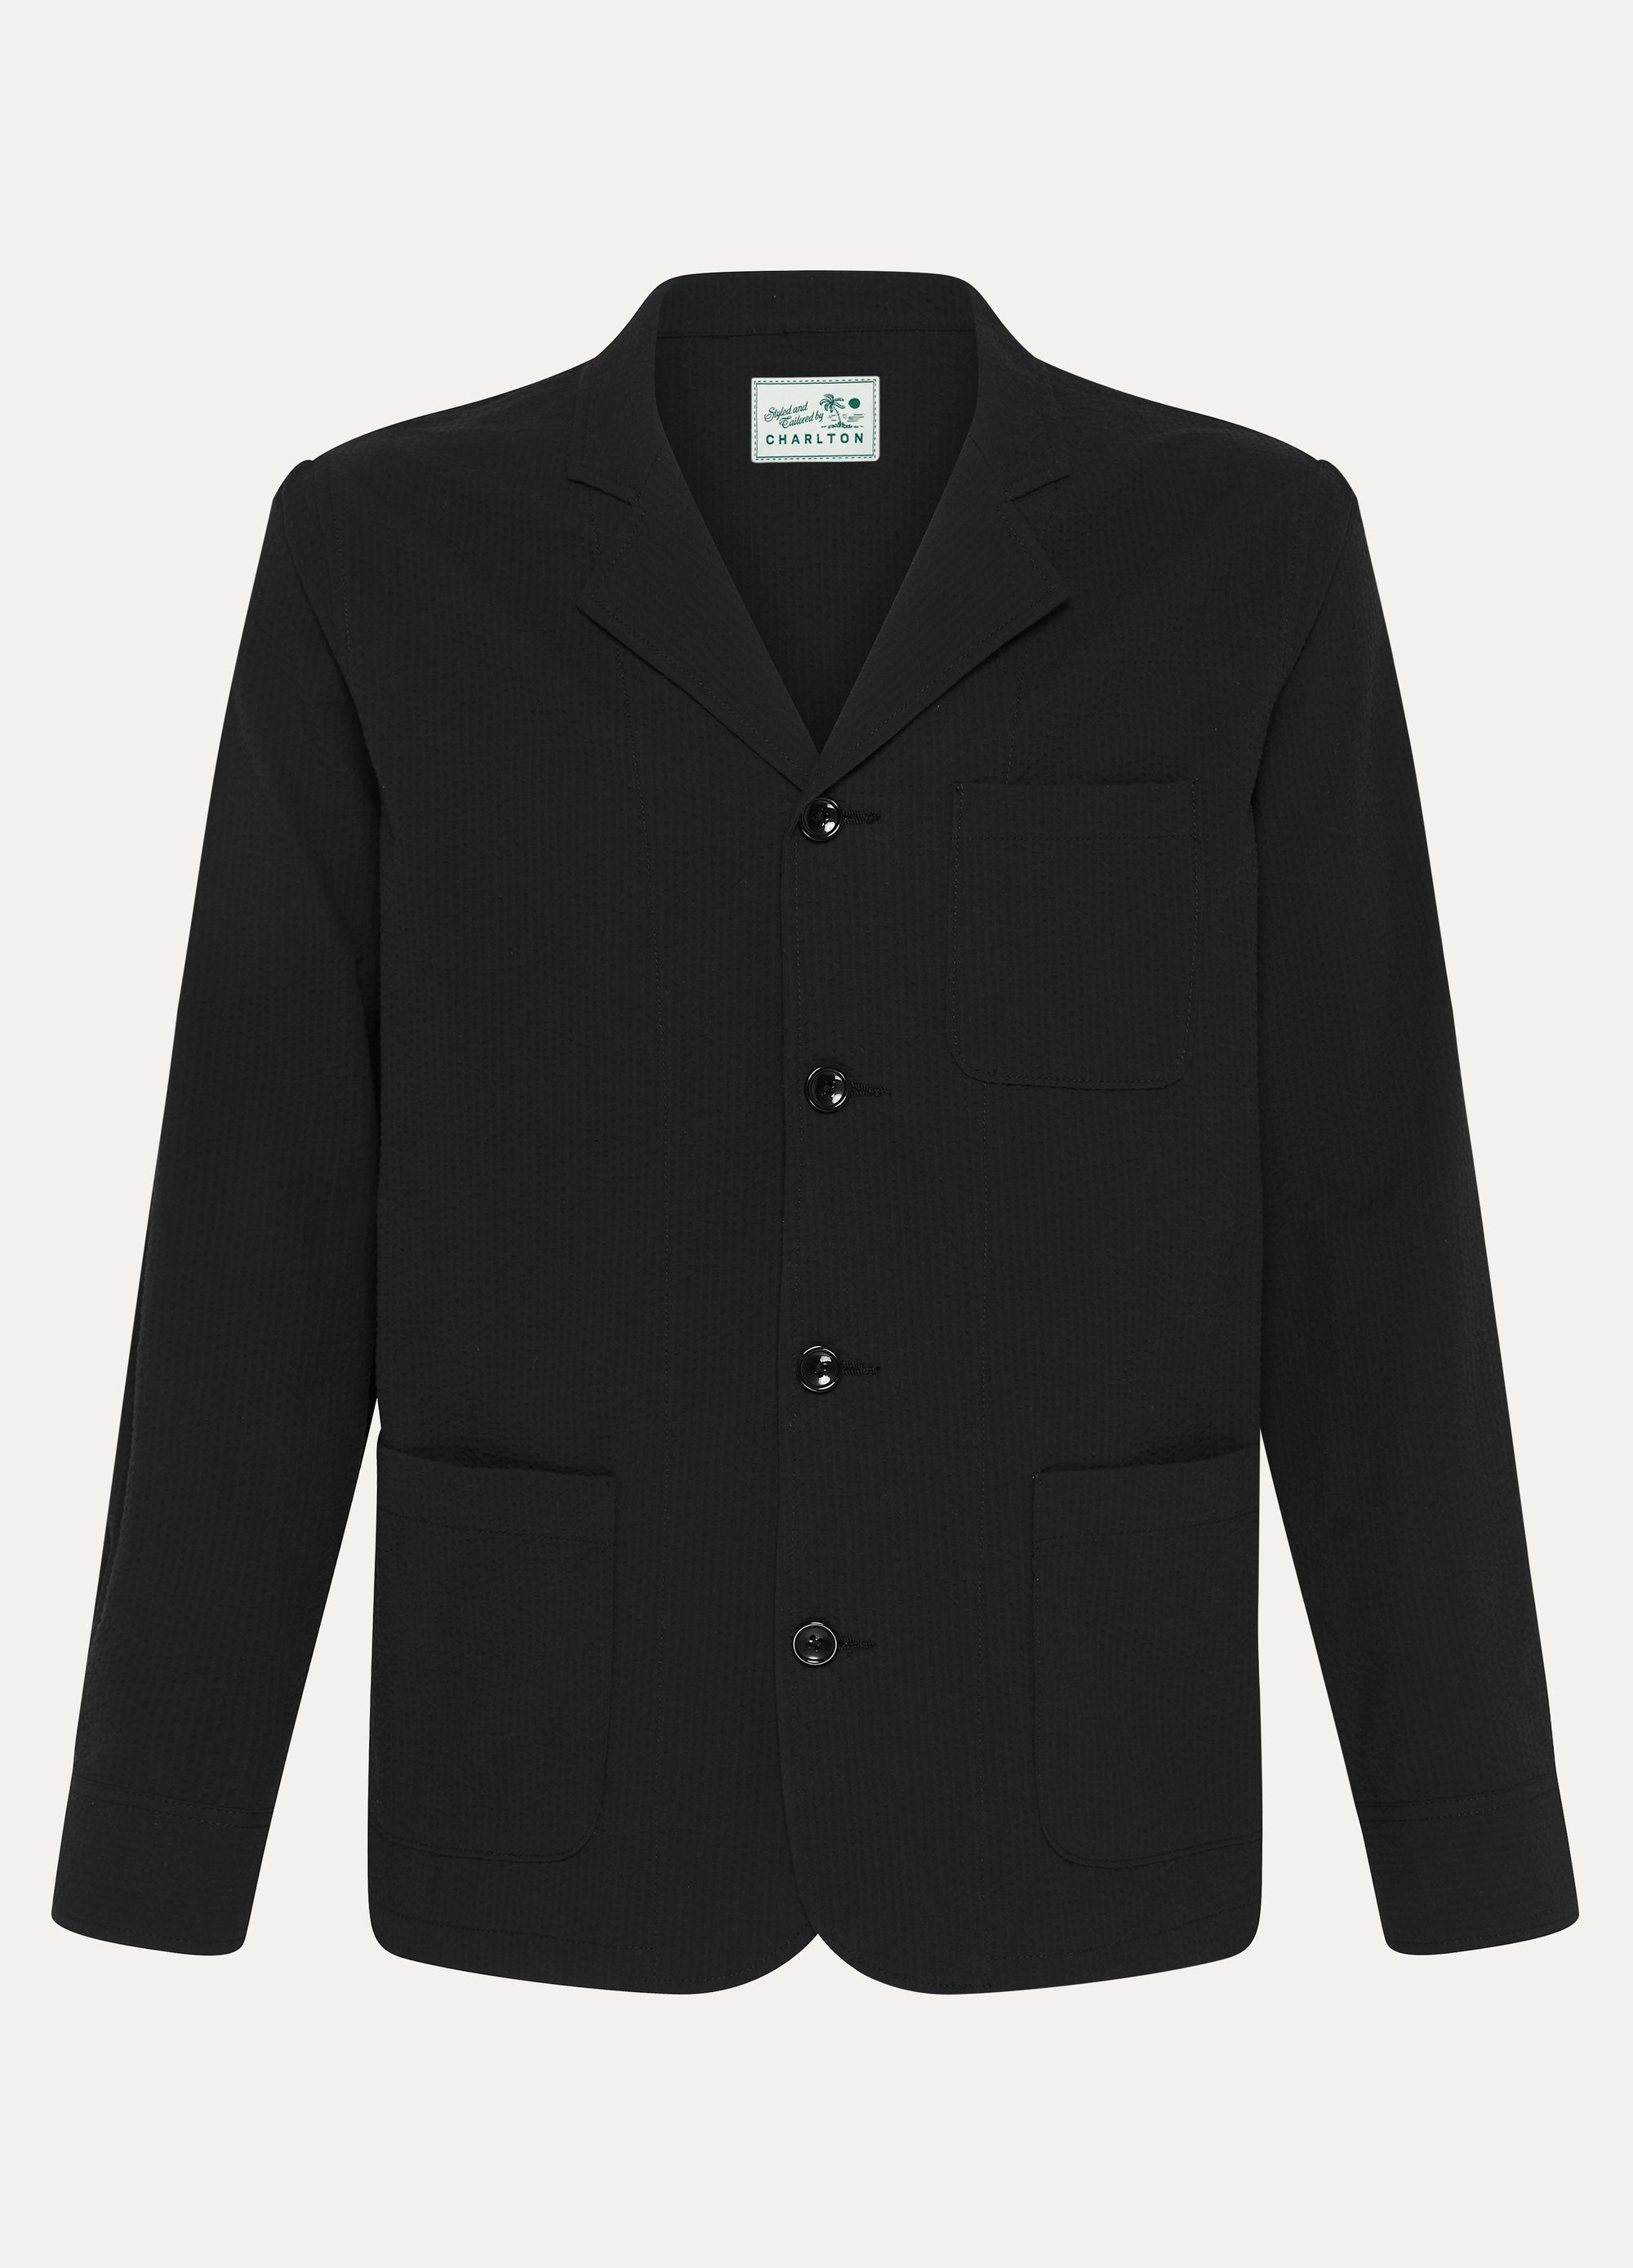 Deconstructed Seersucker Suit Jacket